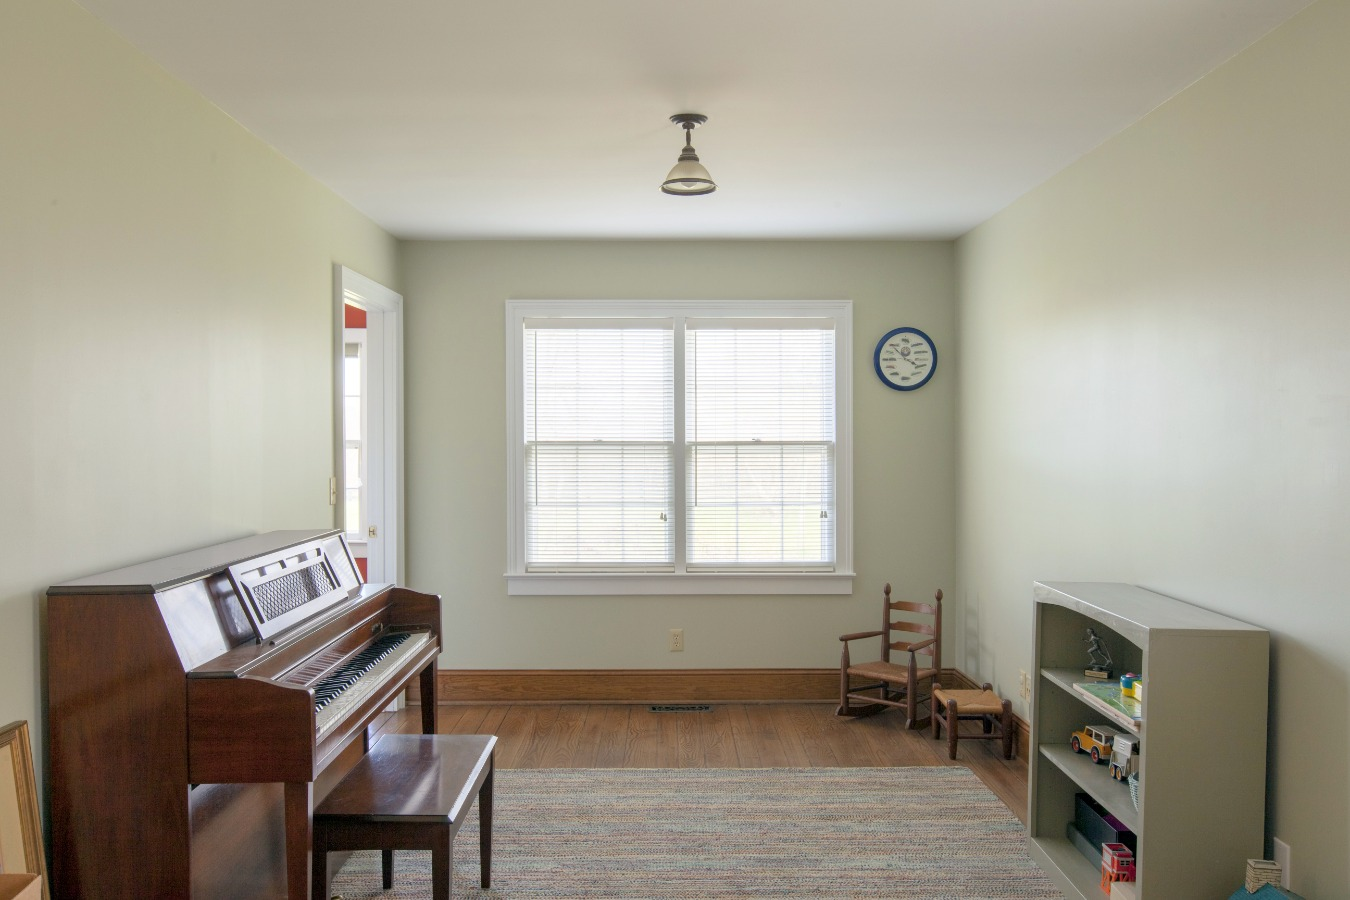 Side room for a guest bed, office or playroom